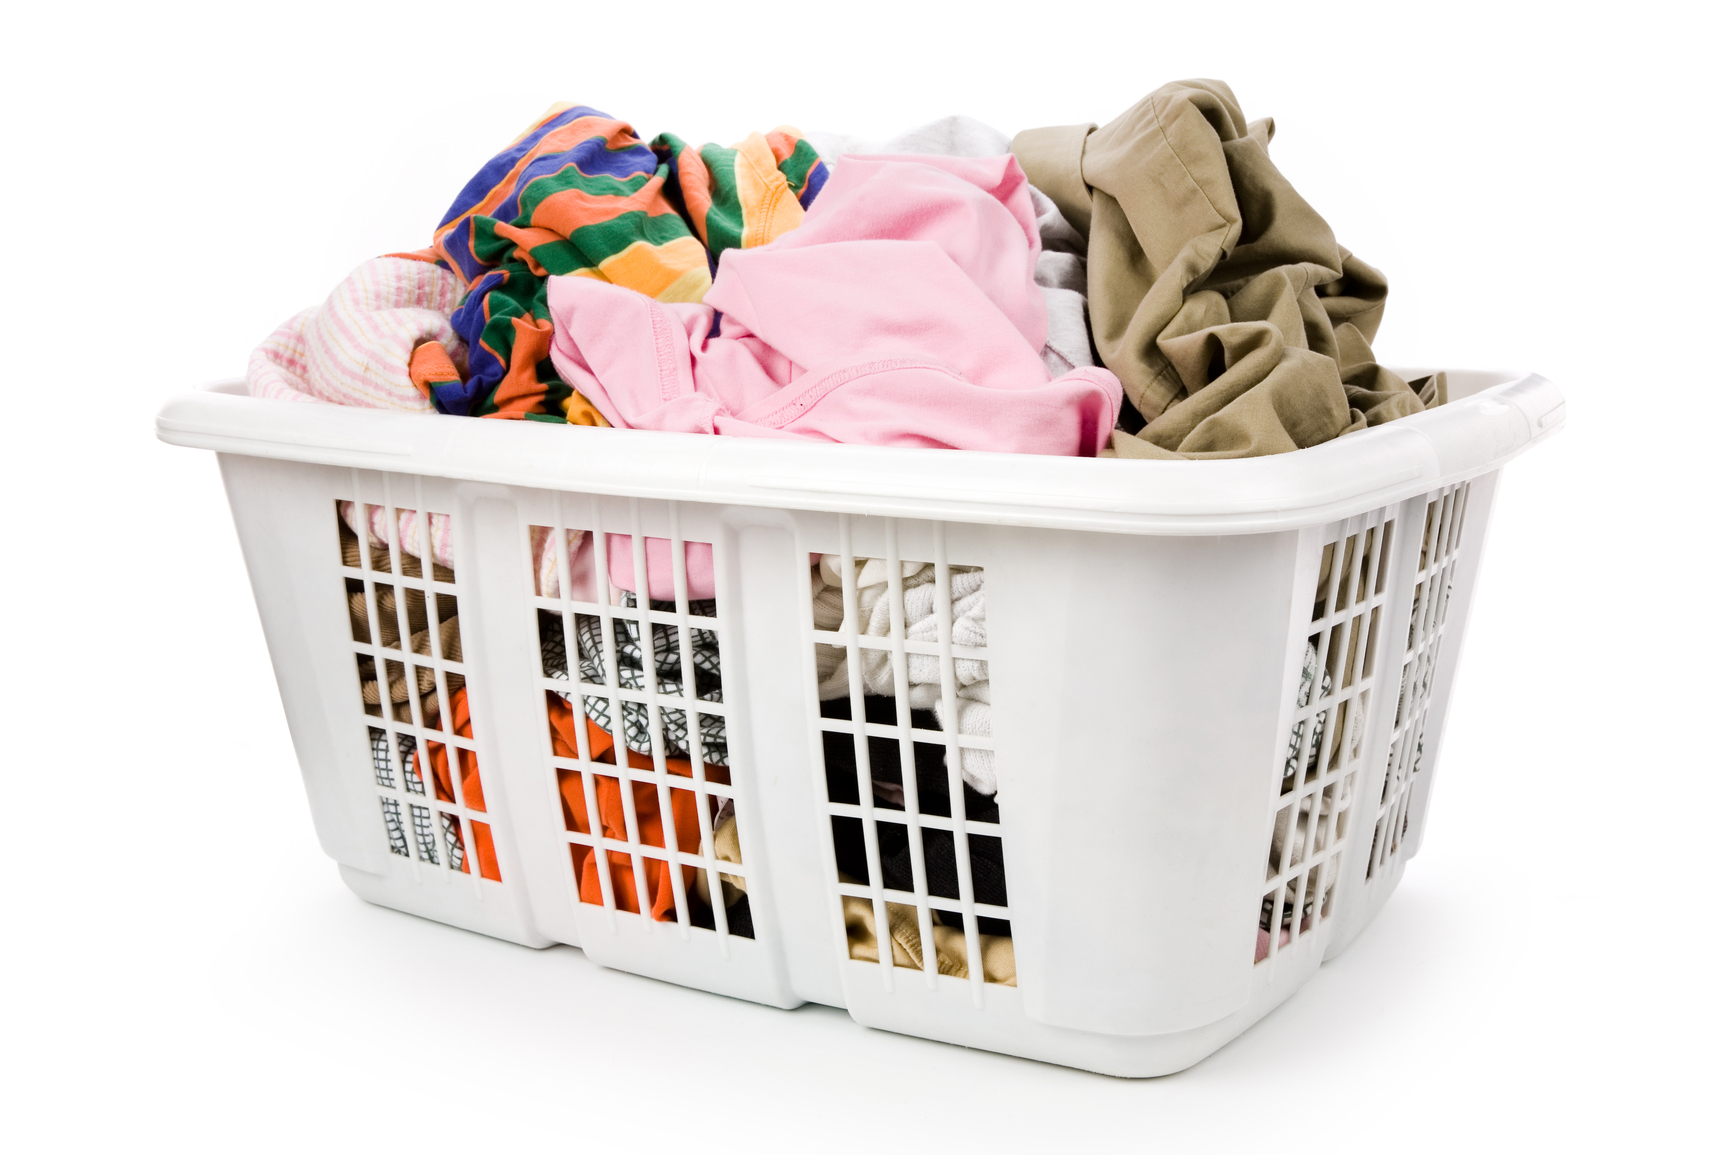 Clothes Baskets Using A Laundry Pickup And Delivery Service